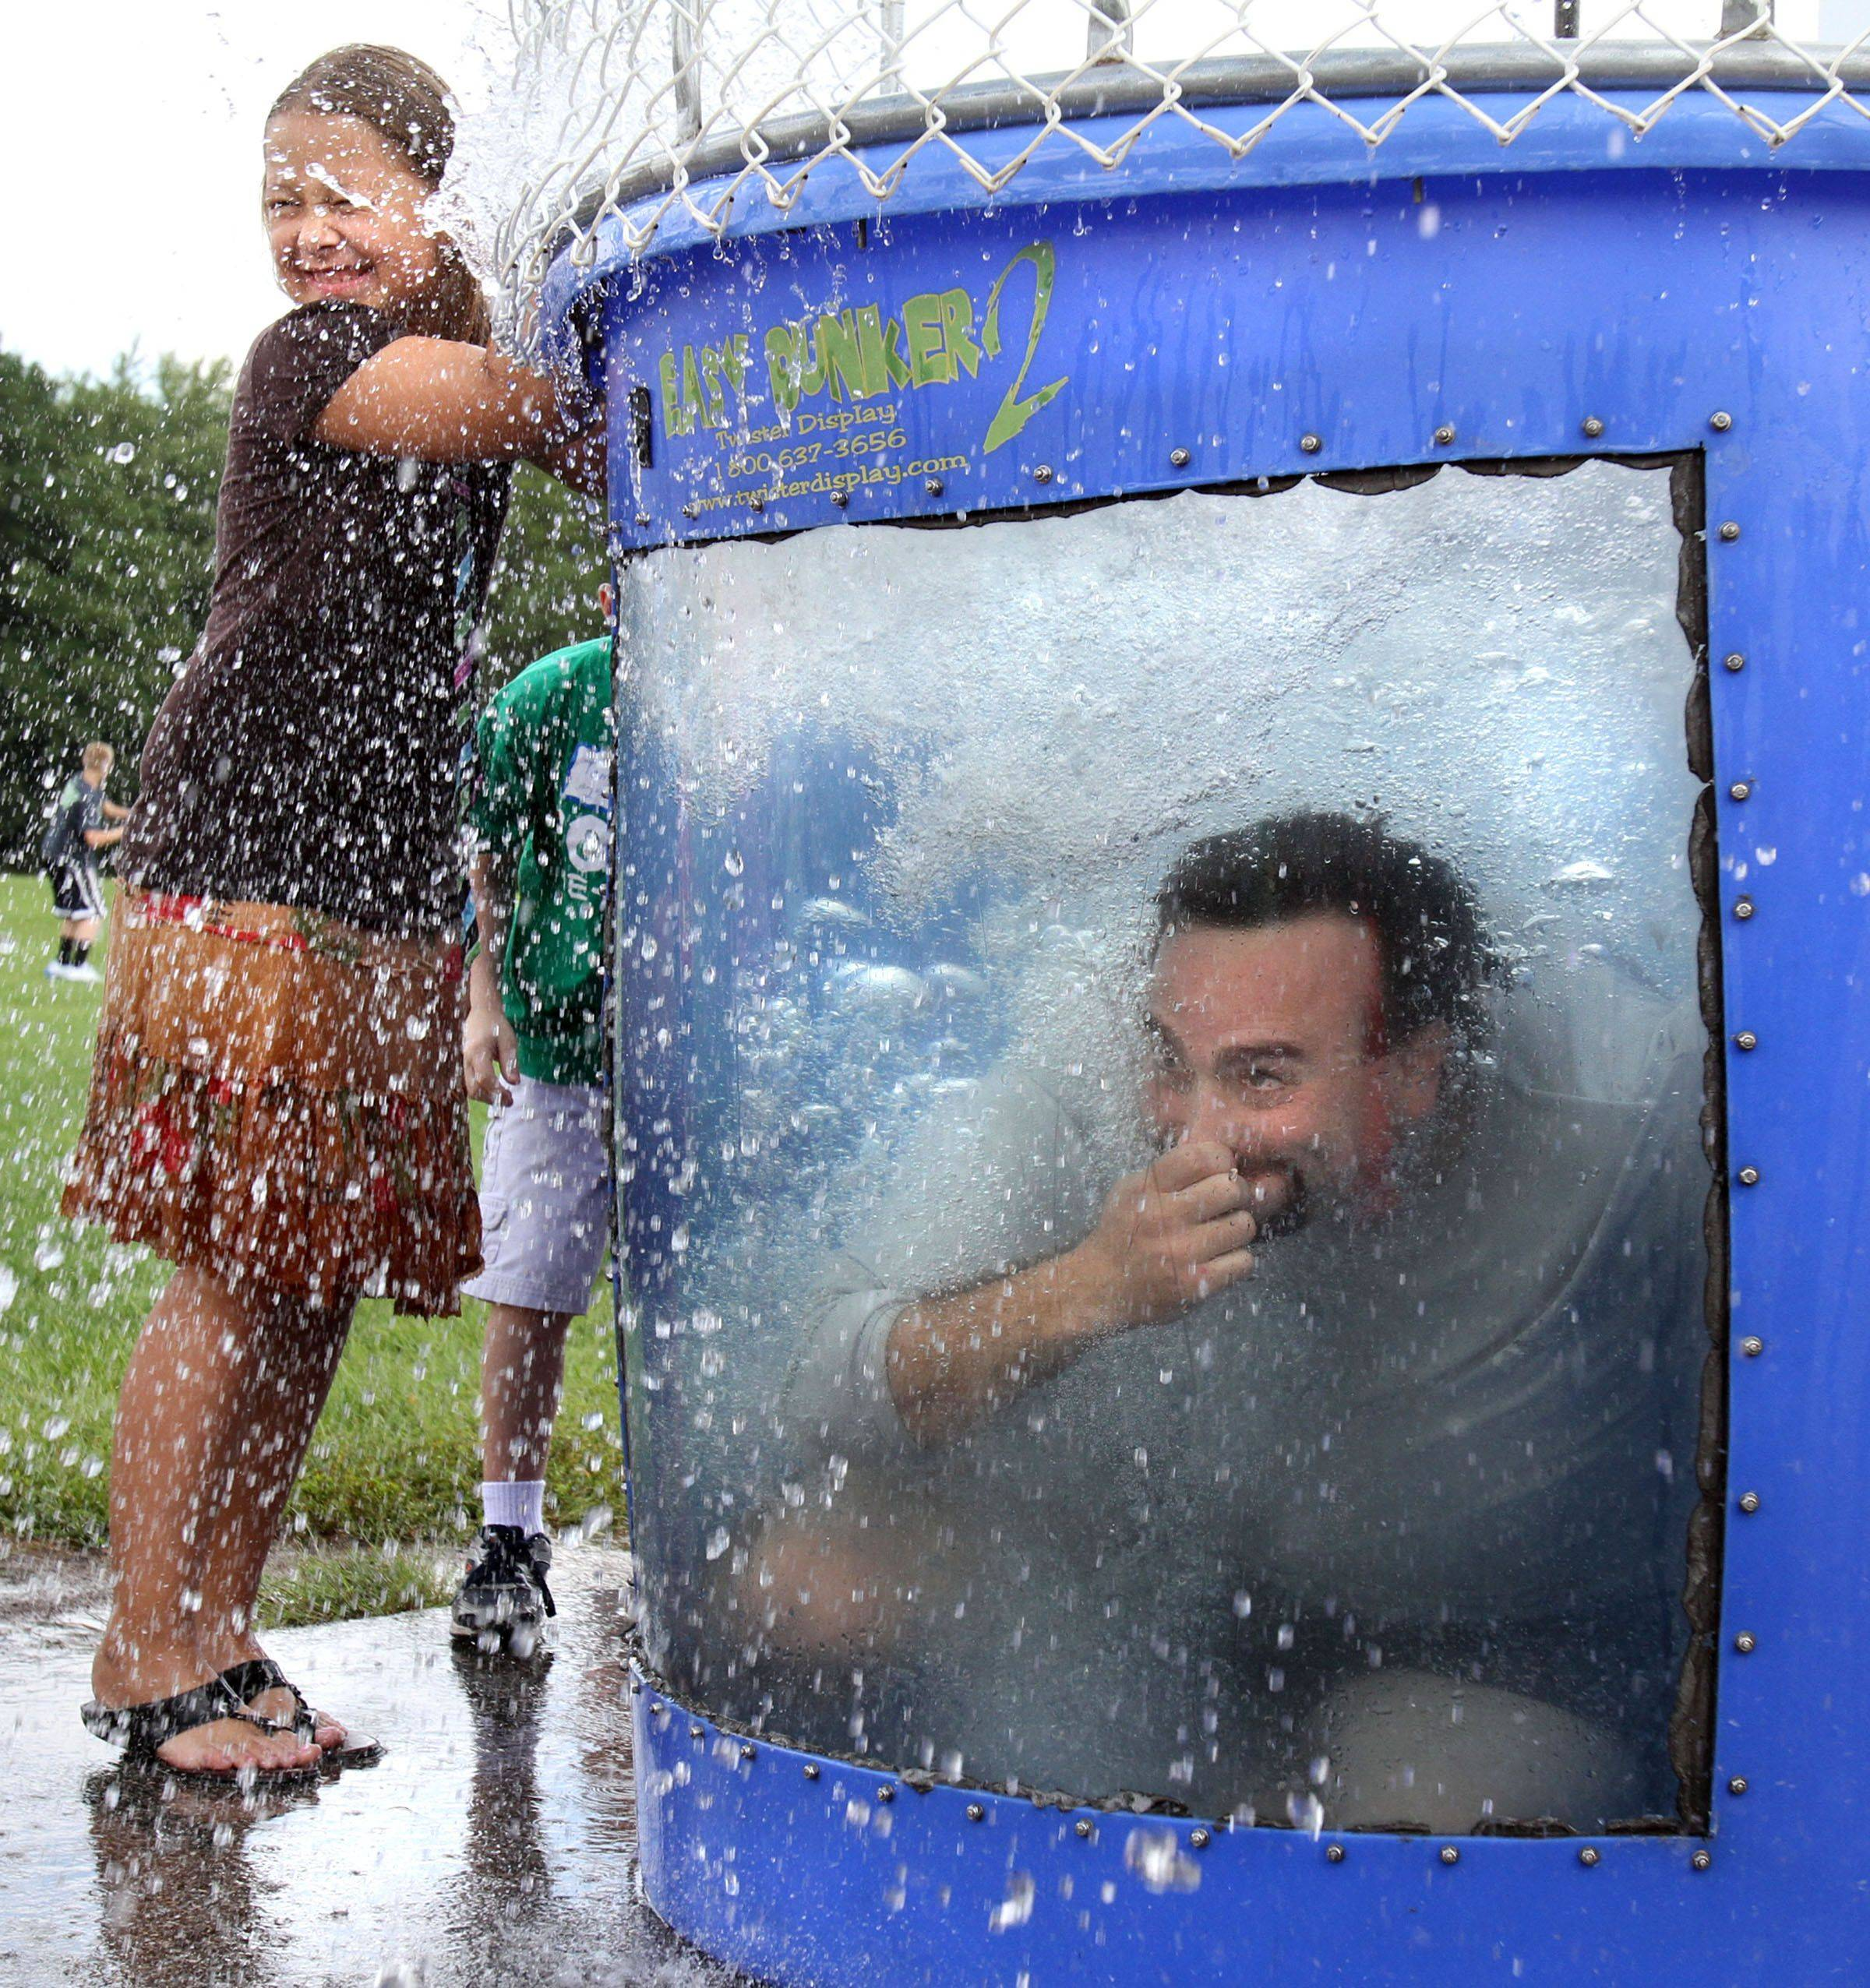 Fourth-grader Maja Keska gets splashed as Cameron Shapiro, principal of Seth Paine Elementary School, is dropped in the dunk tank at the school's 50th birthday party held by Lake Zurich Community Unit School District 95 at the school in Lake Zurich on Saturday.